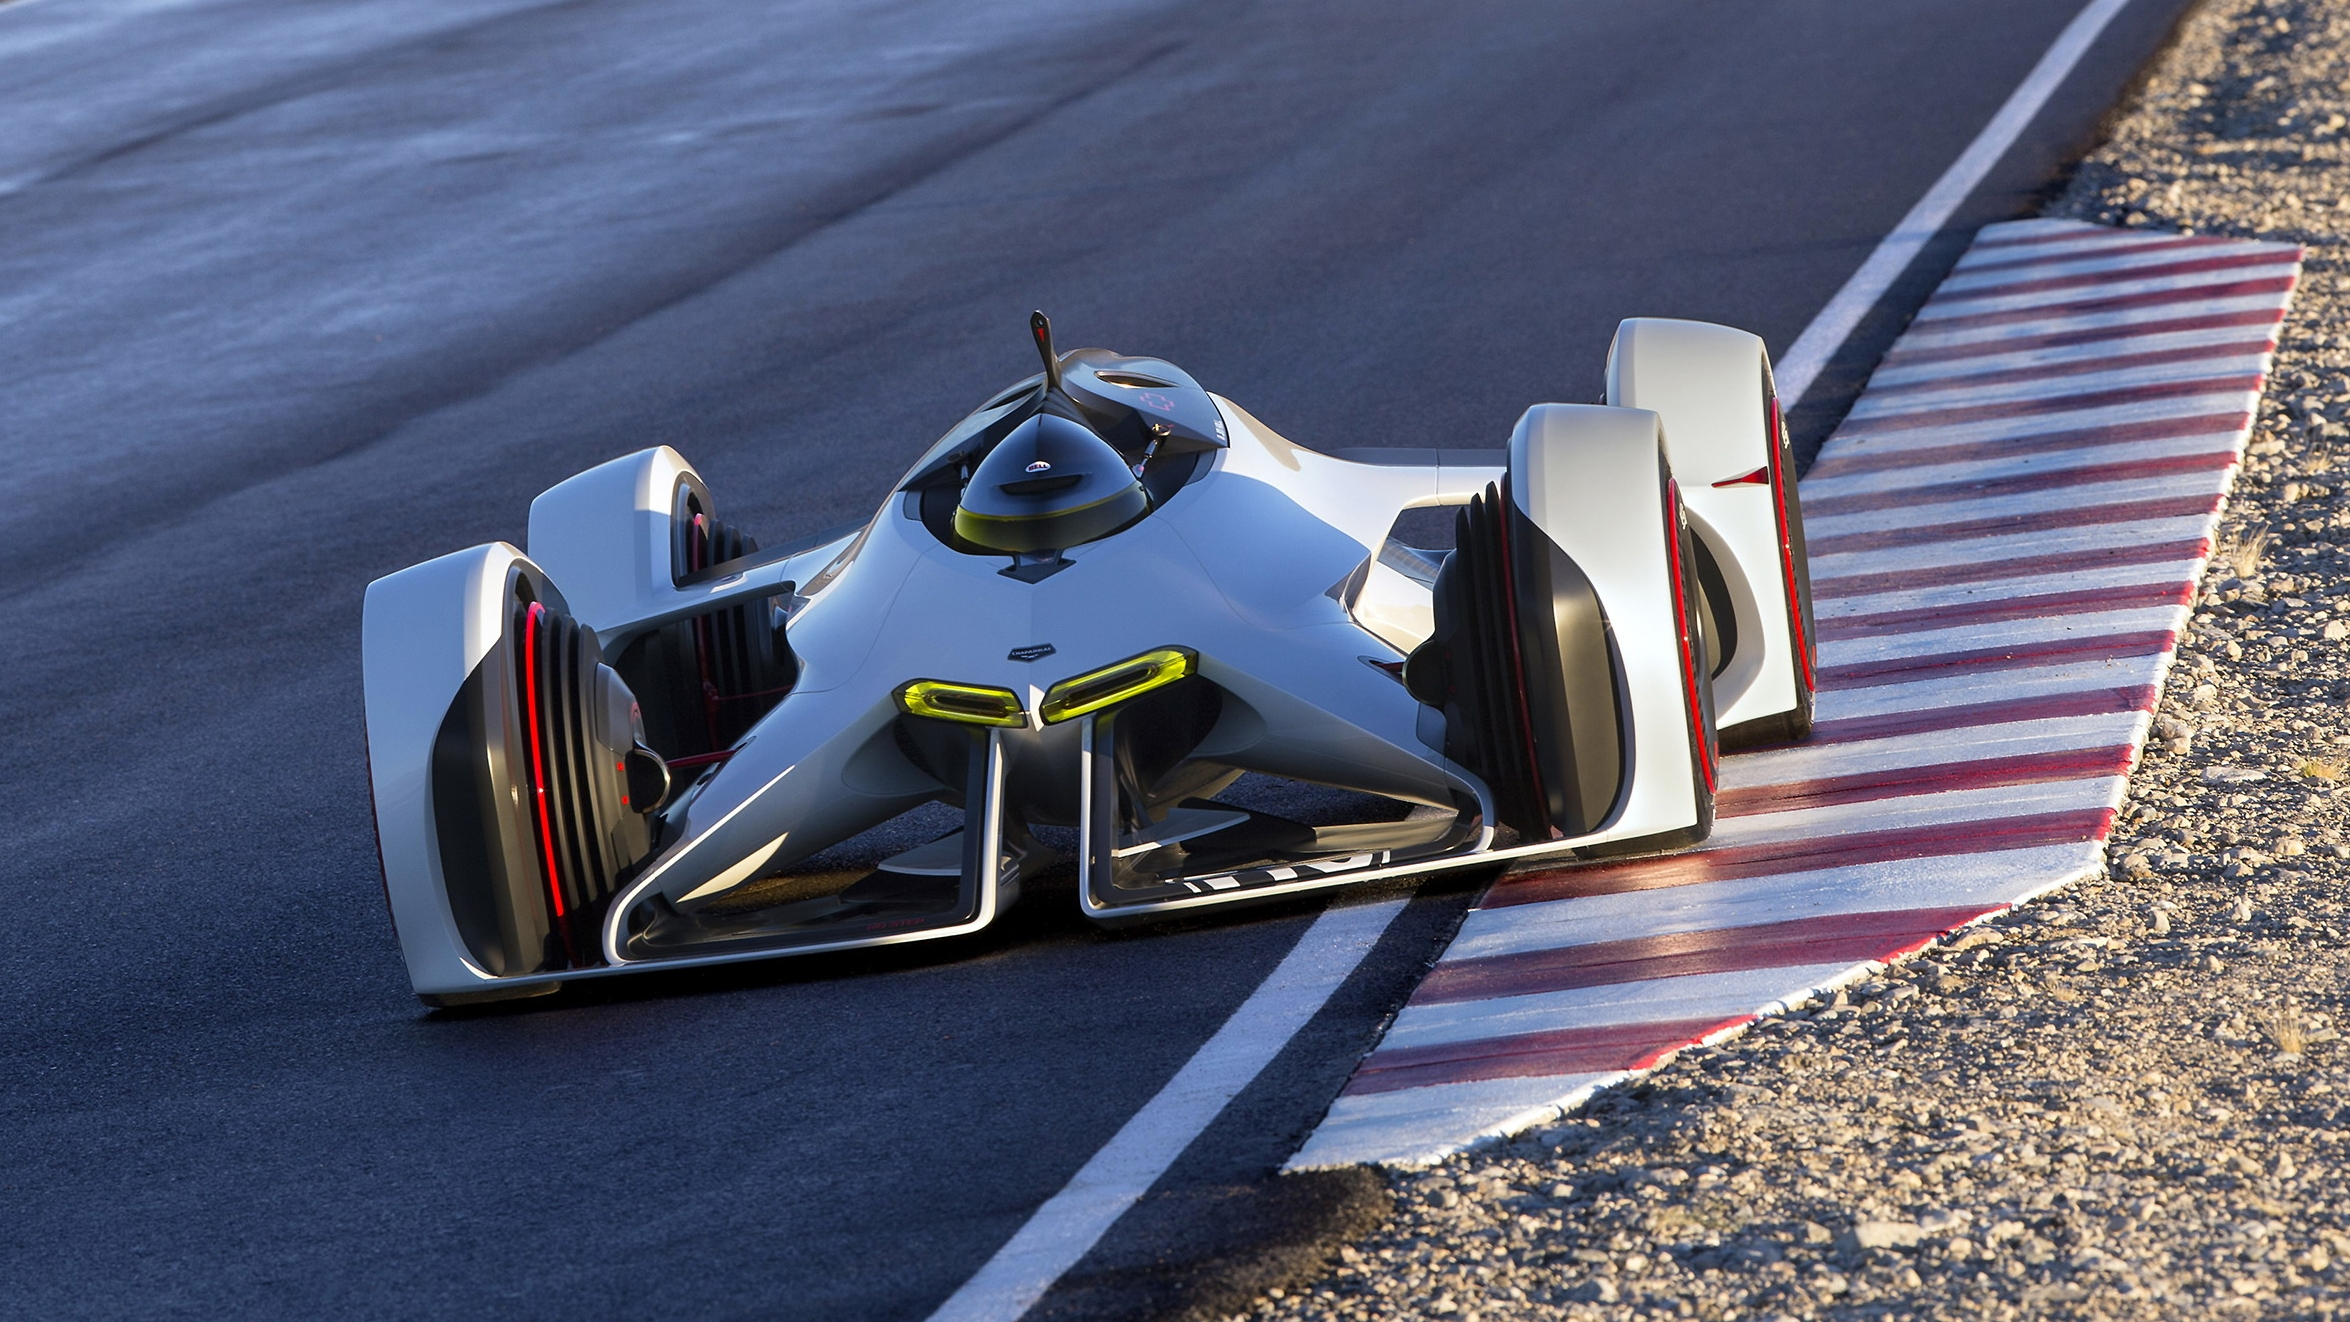 2015 Chevrolet Chaparral 2X VGT Concept | Top Speed